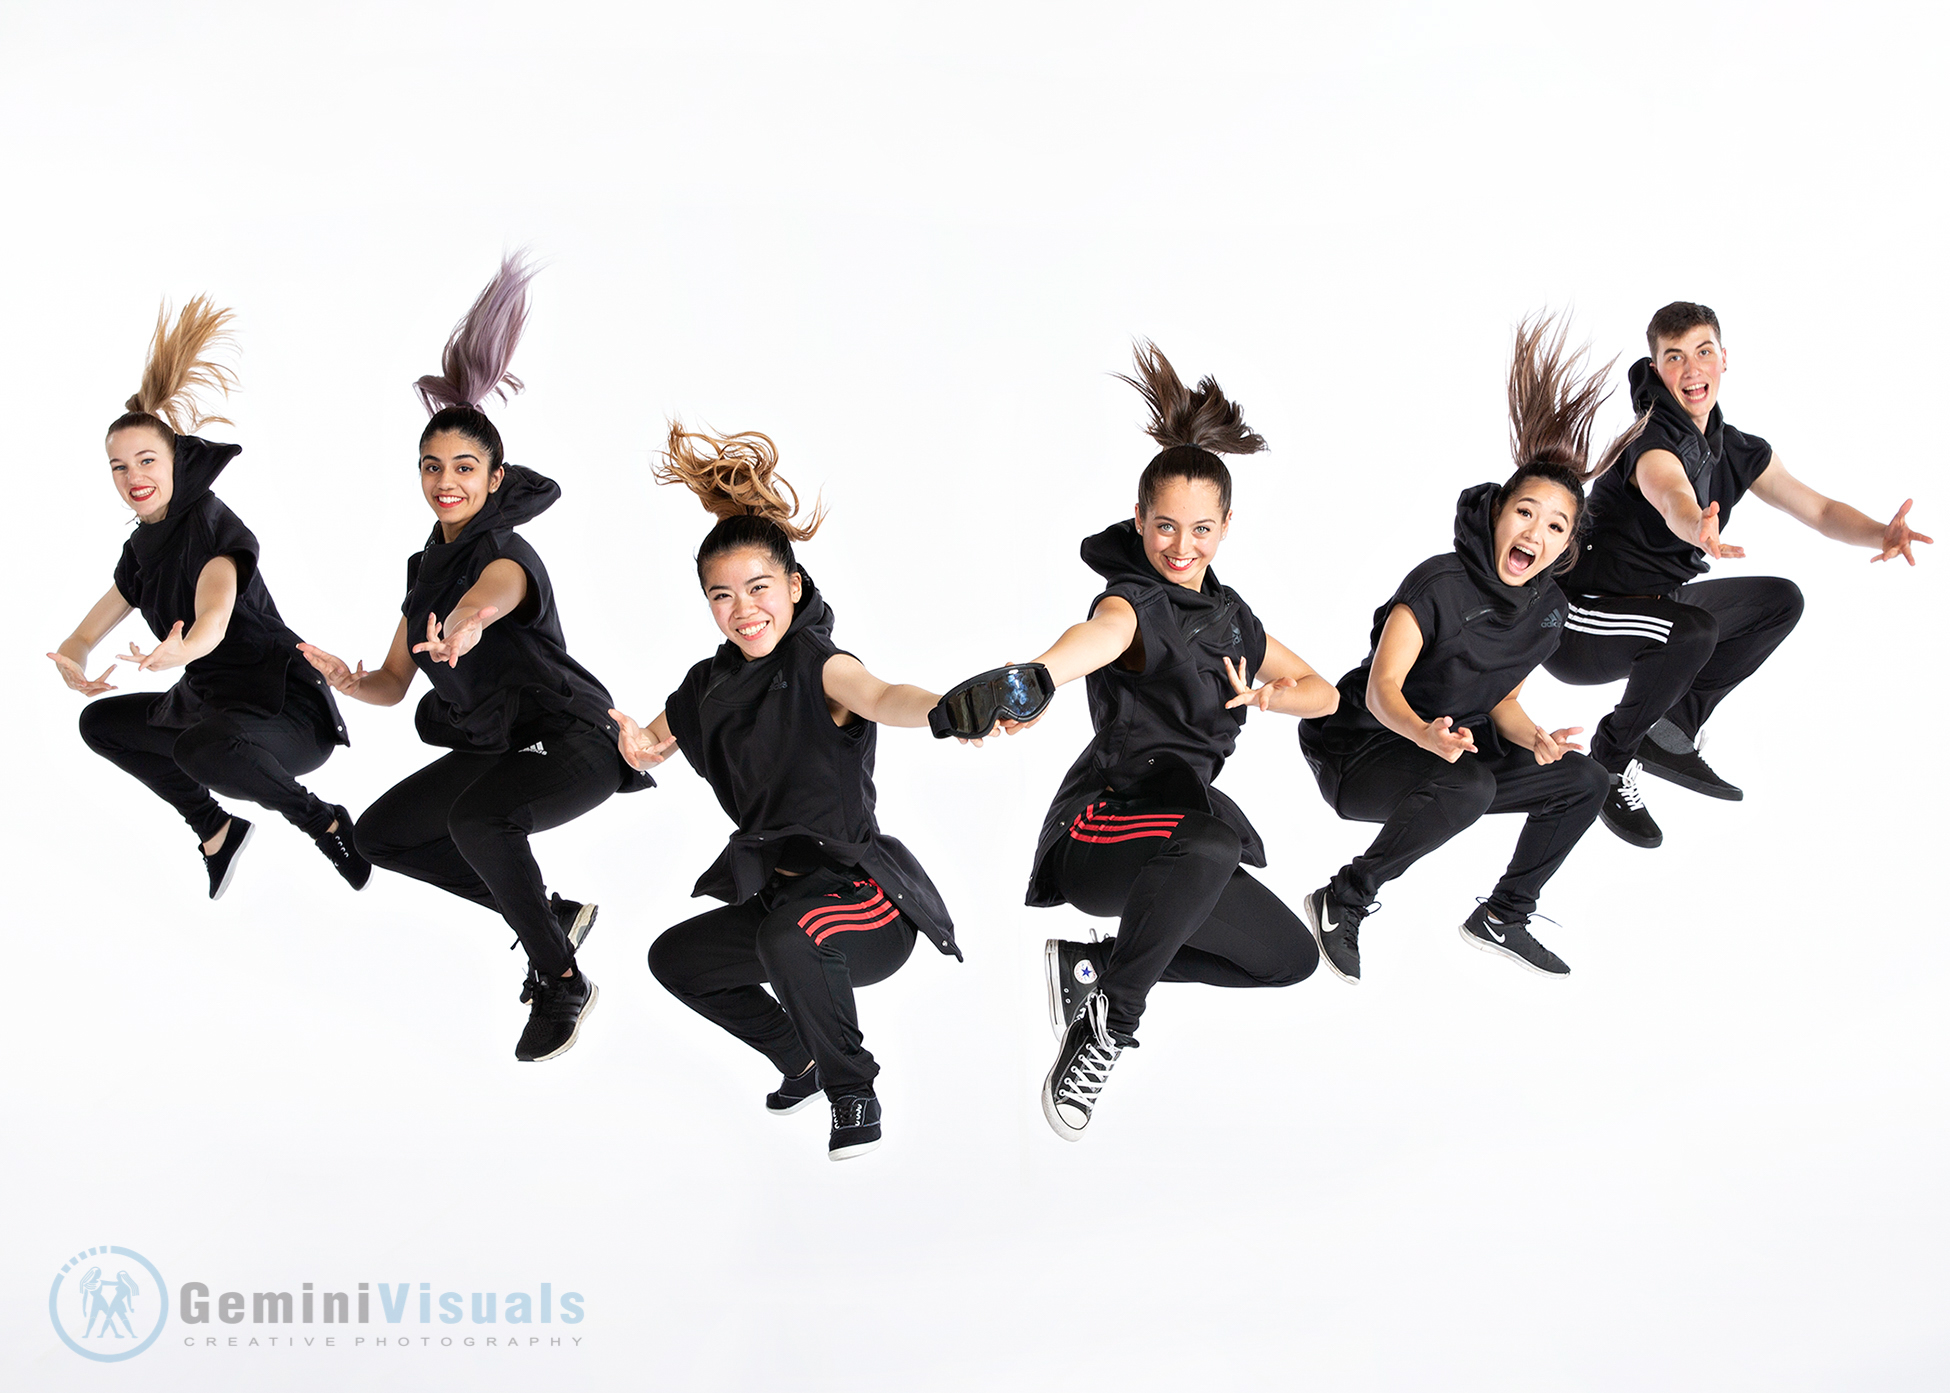 dance 2018, gemini visuals, creative dance photos, dance photos, Richmond academy of dance, RAD